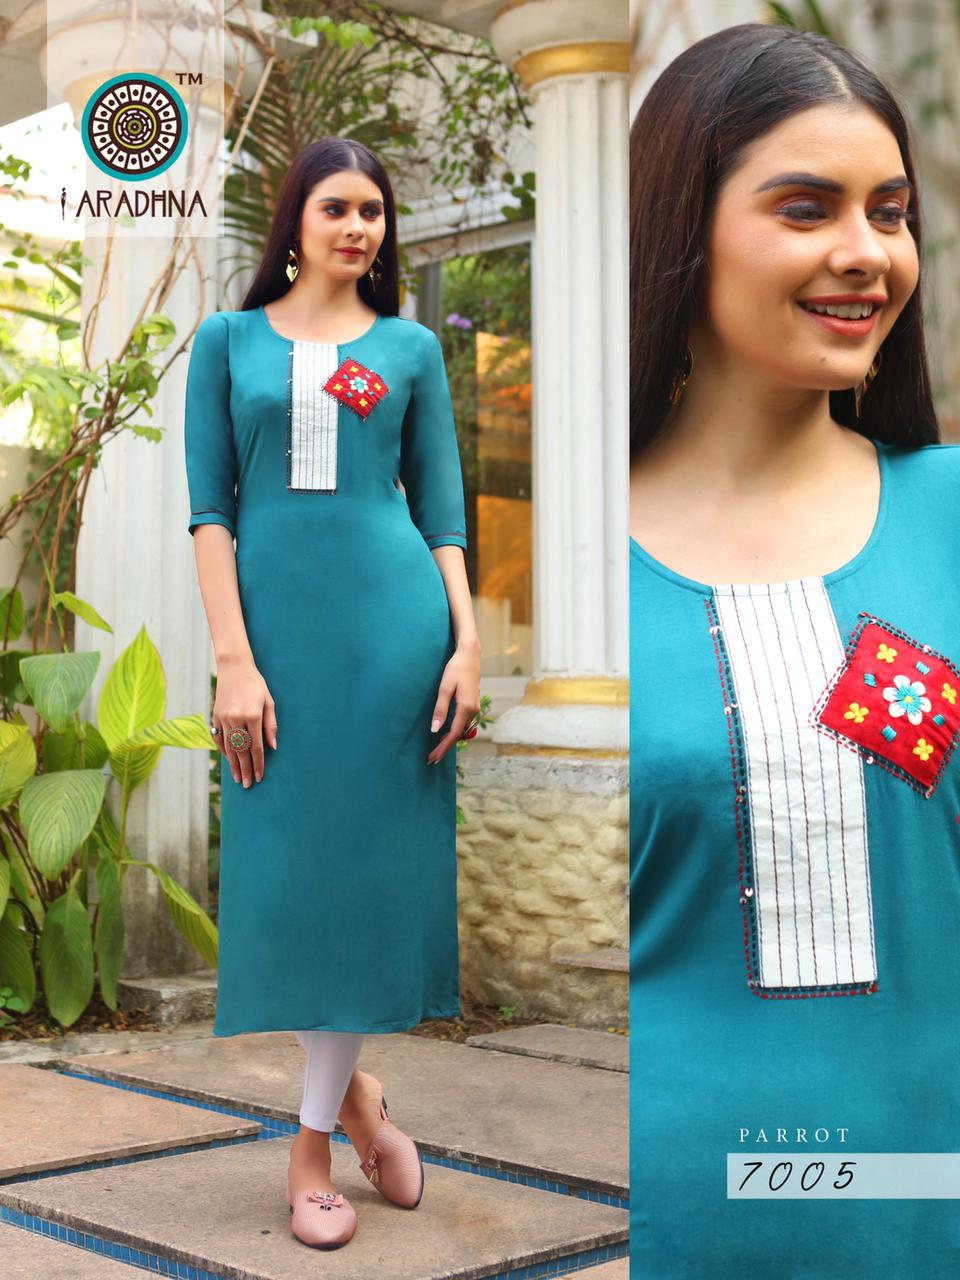 Aradhna Parrot Vol 7 Kurti Wholesale Catalog 11 Pcs 18 - Aradhna Parrot Vol 7 Kurti Wholesale Catalog 11 Pcs